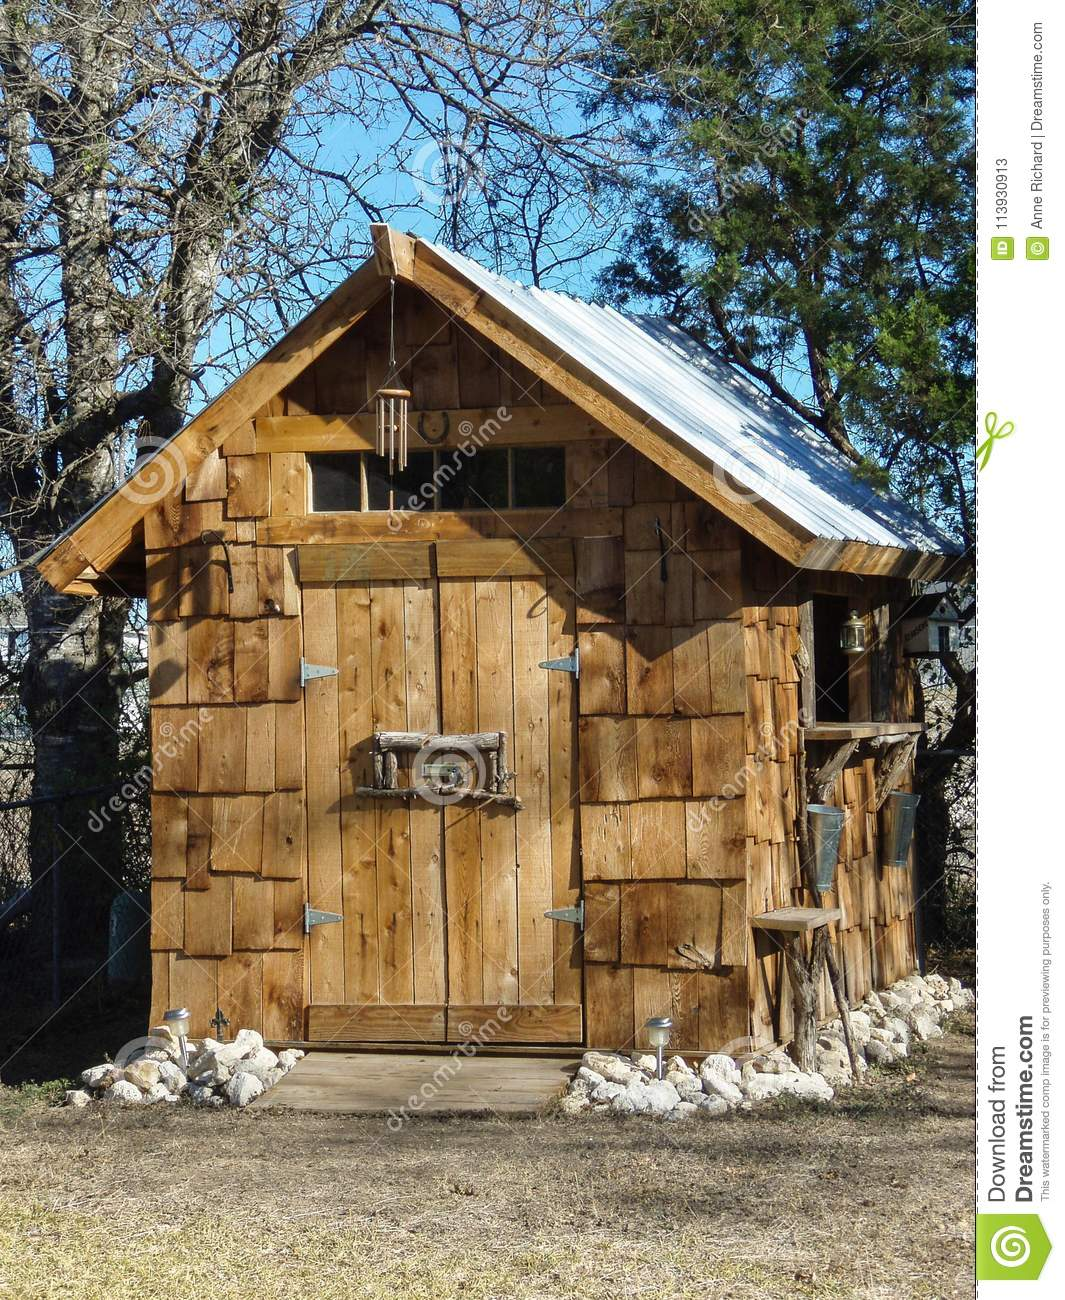 Small Hand-made Wooden Sugar Shack Garden Shed Stock Image - Image ...